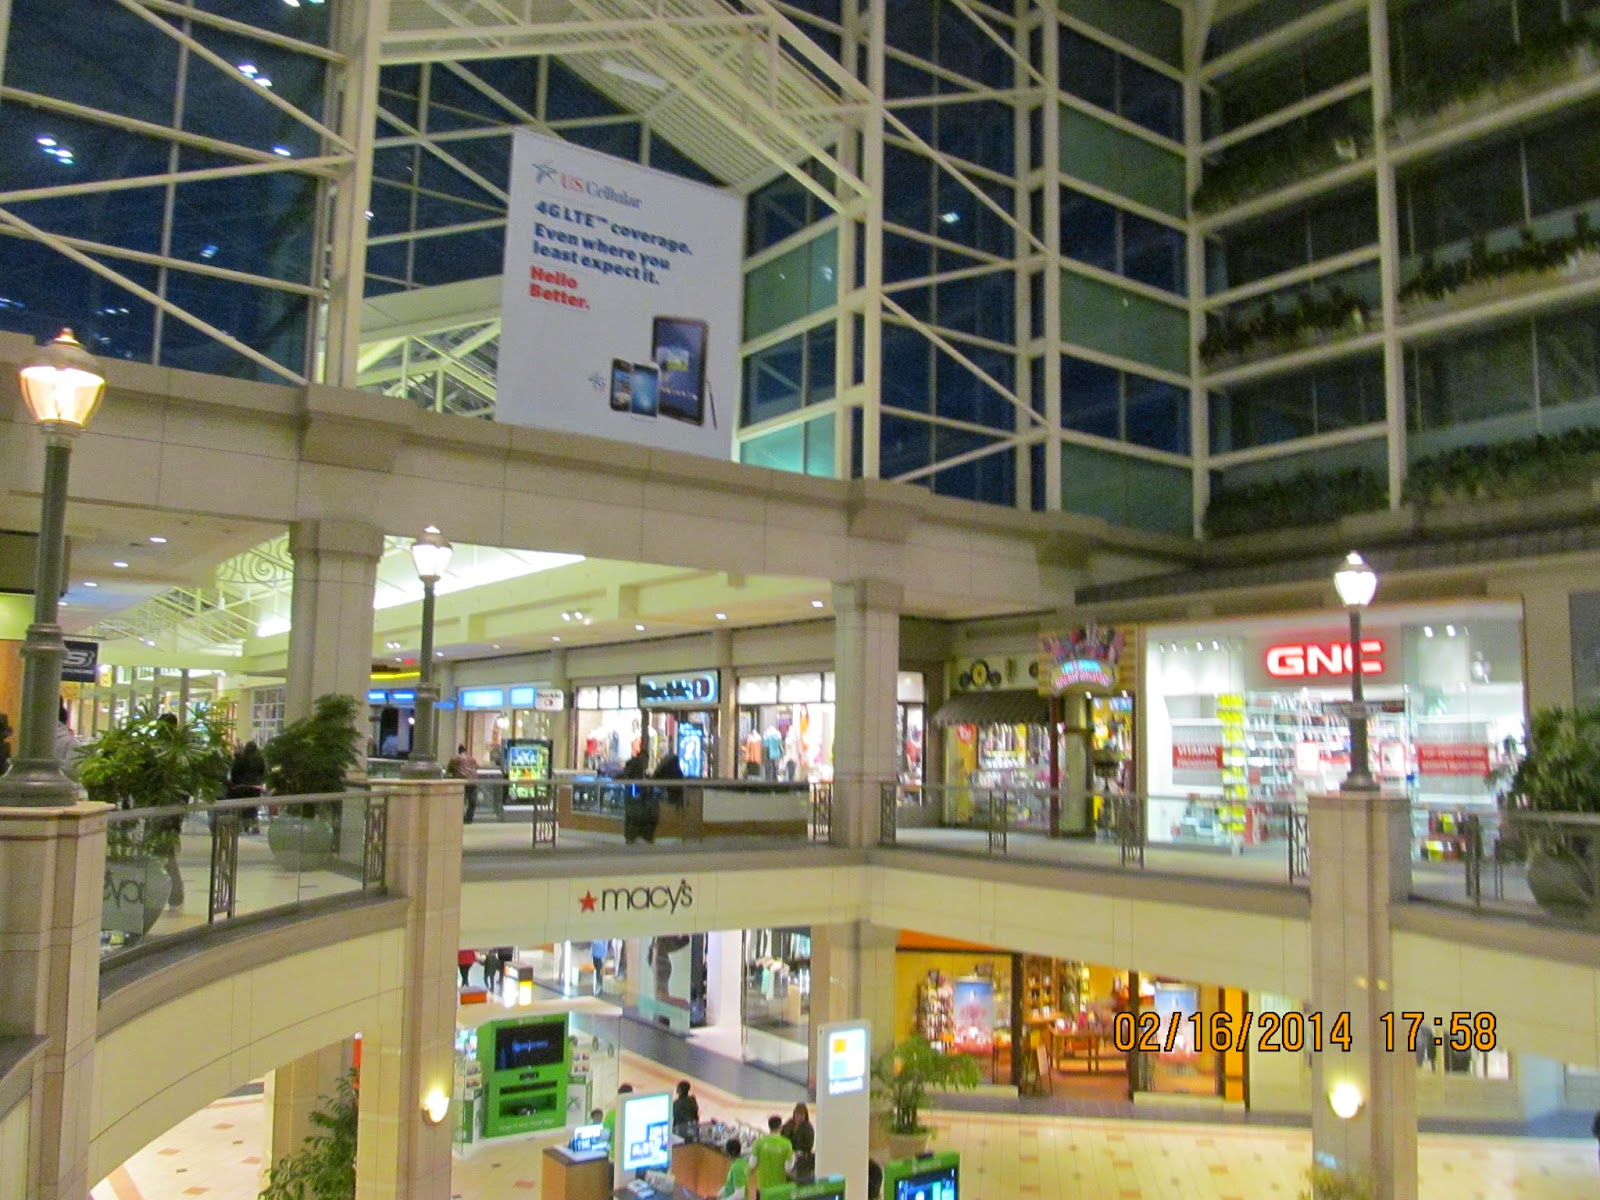 Trip WI) Mayfair to the Mall- (Wauwatosa, Mall: